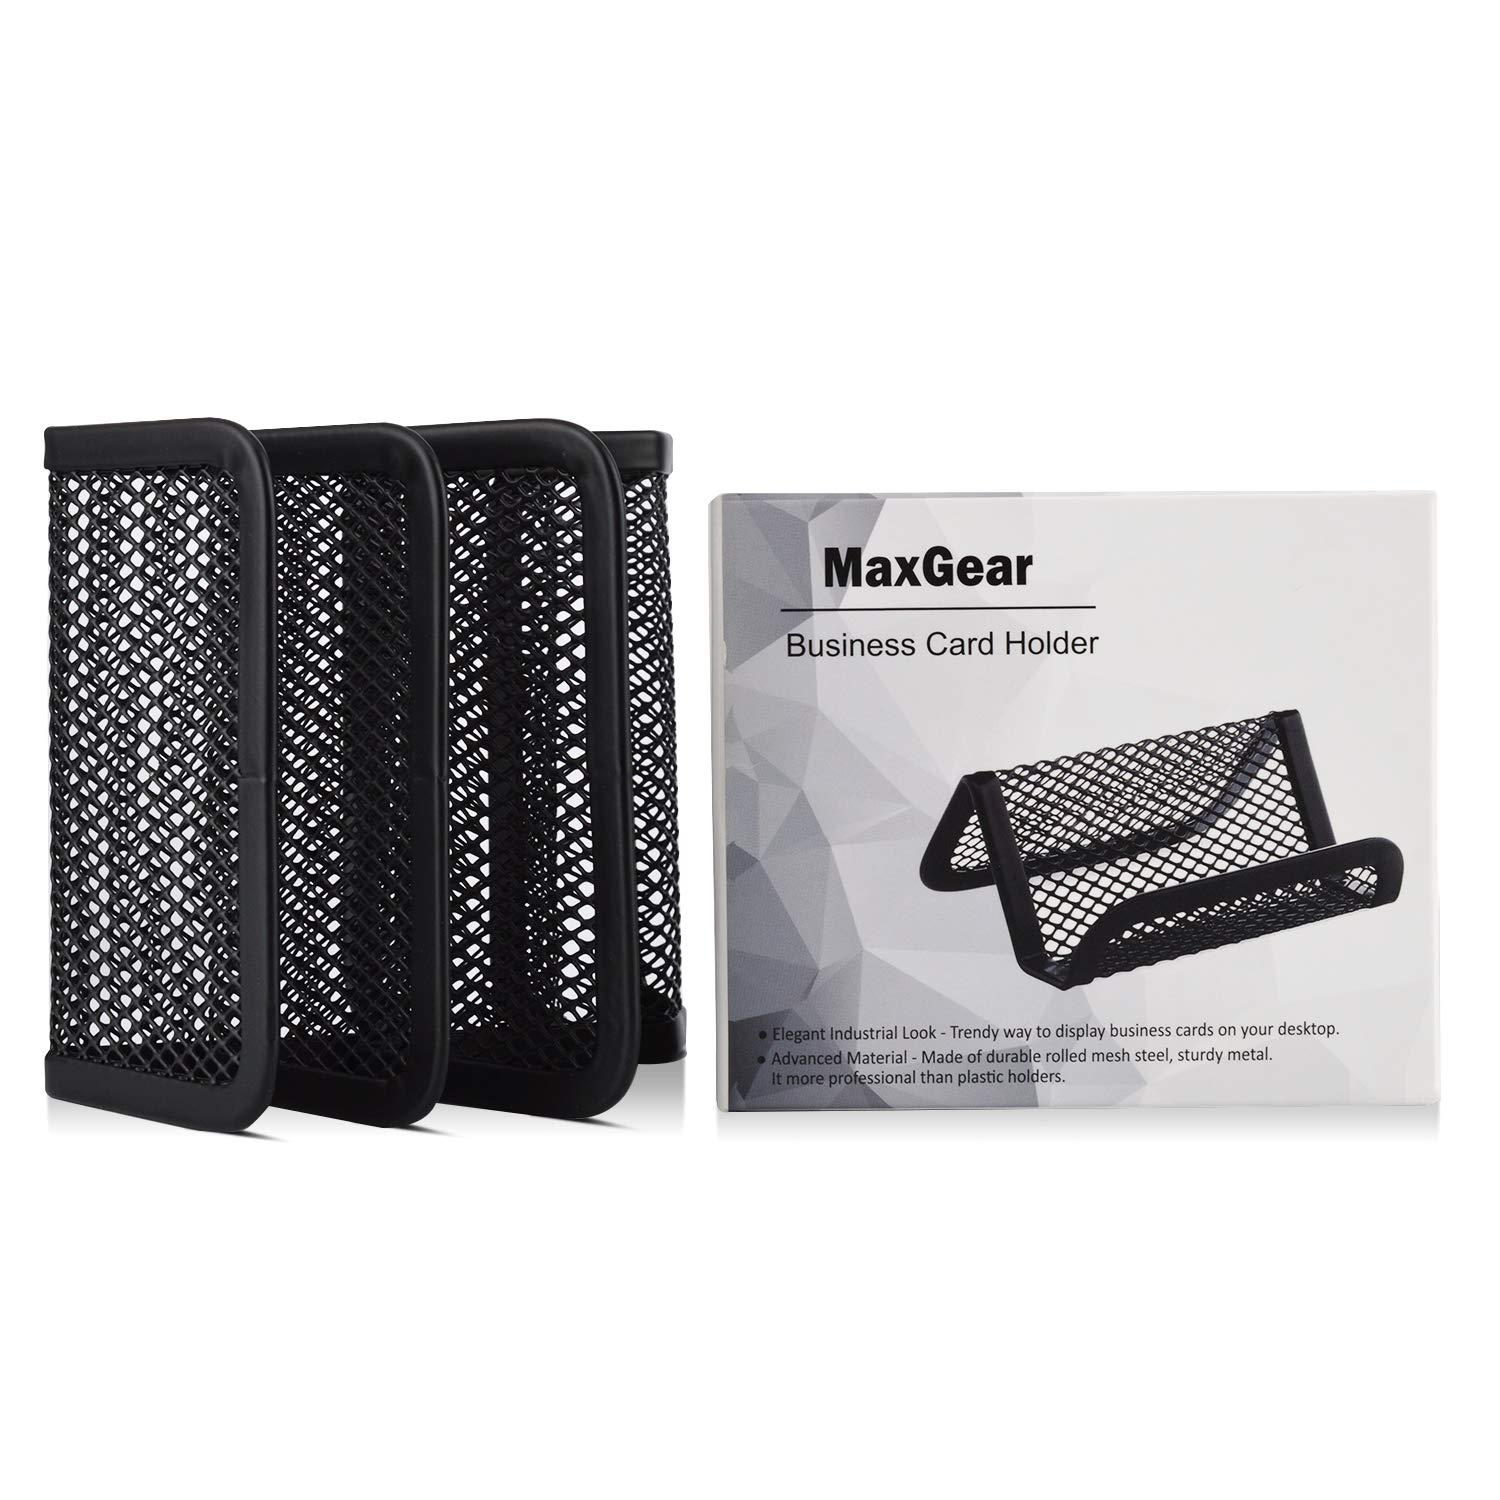 MaxGear Metal Mesh Business Card Holder Stand for Desk Office Business Card Holders Mesh Collection Organizer for Name Card Black Mesh Business Card Display 3 Pack Capacity 50 Cards